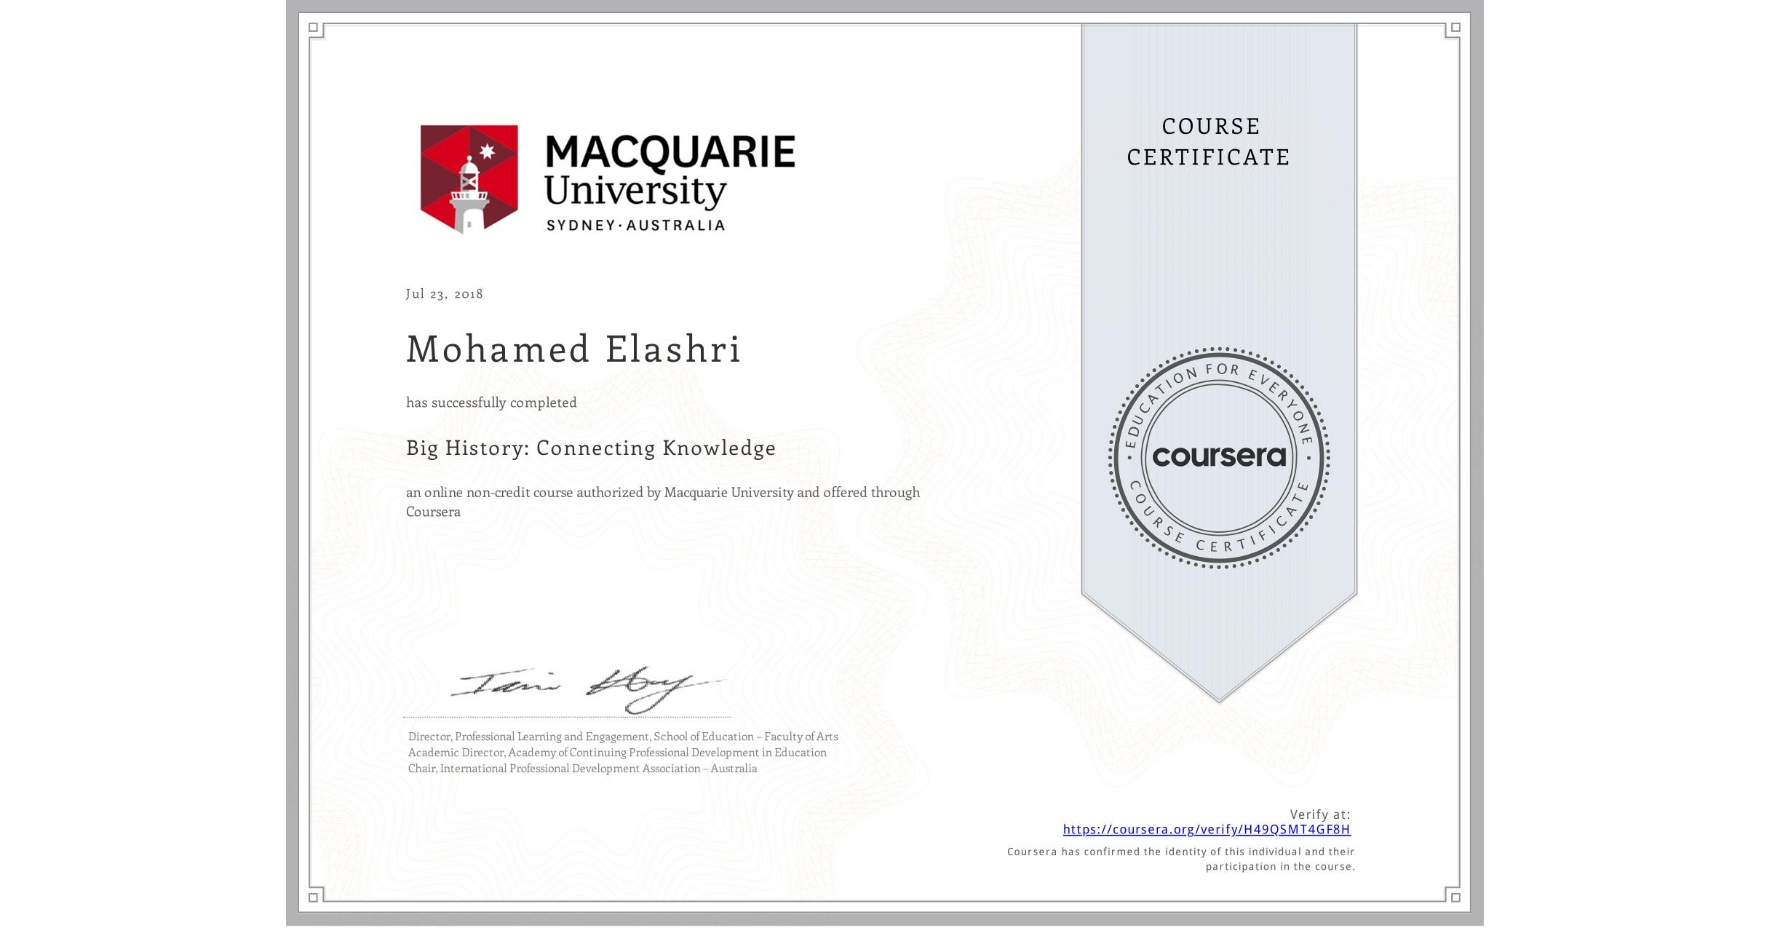 View certificate for Mohamed Elashri, Big History: Connecting Knowledge, an online non-credit course authorized by Macquarie University and offered through Coursera